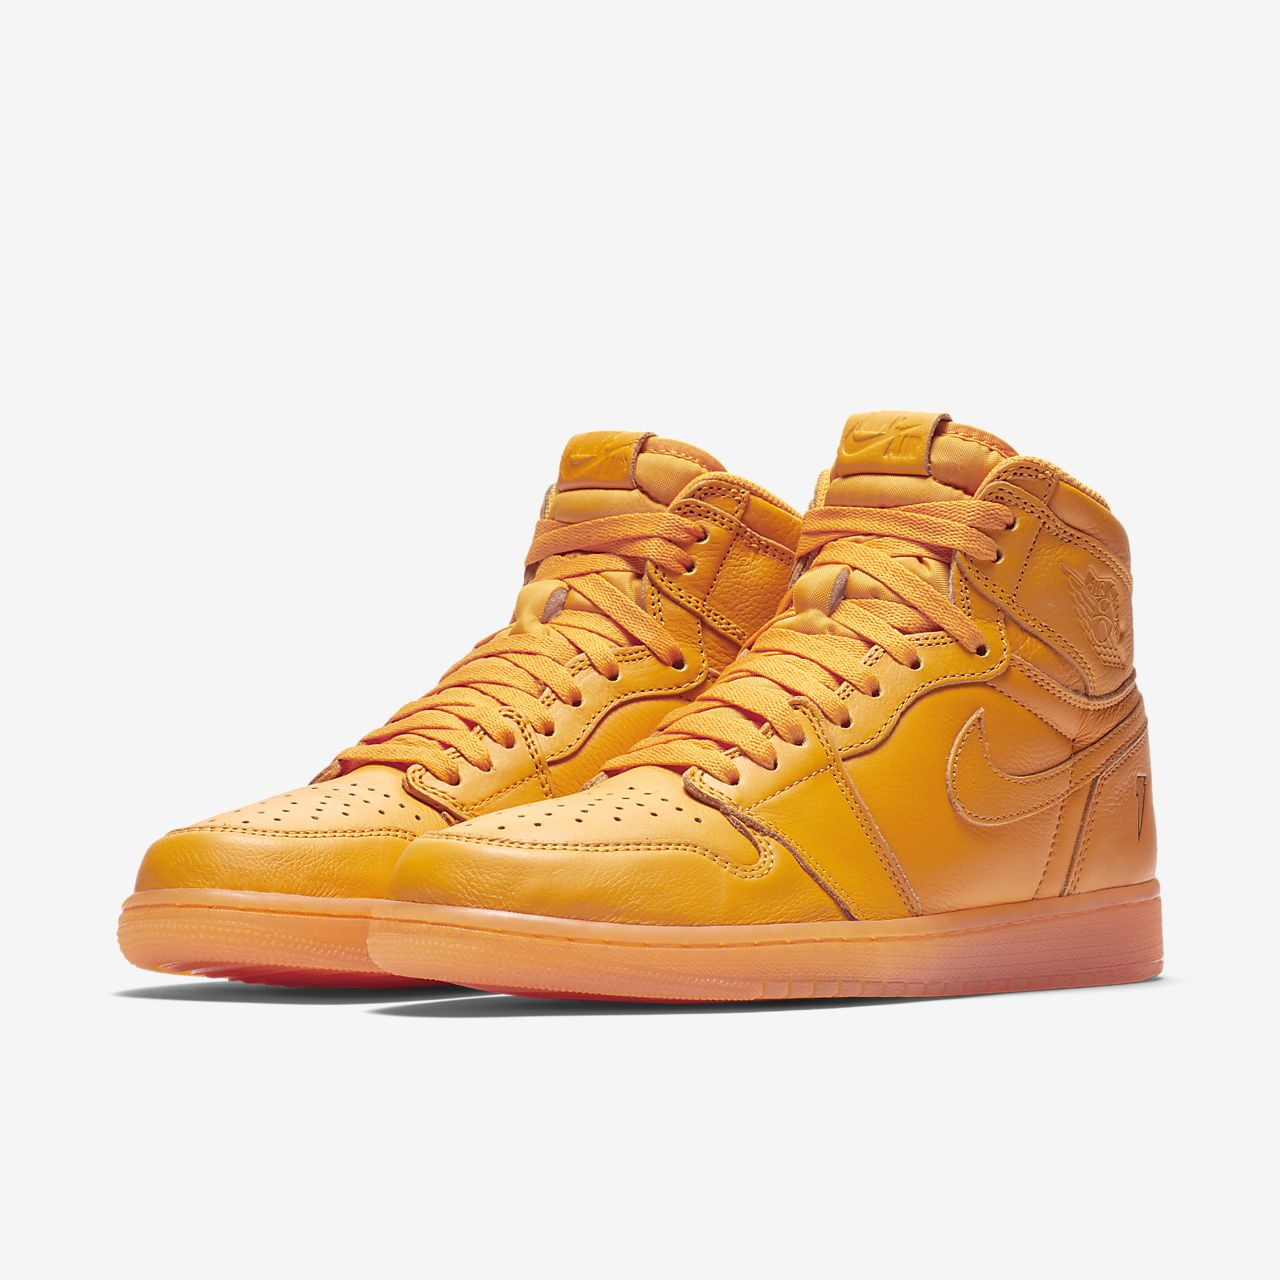 792e8e5192f Air Jordan 1 Retro High OG  Orange  Men s Shoe. Nike.com GB